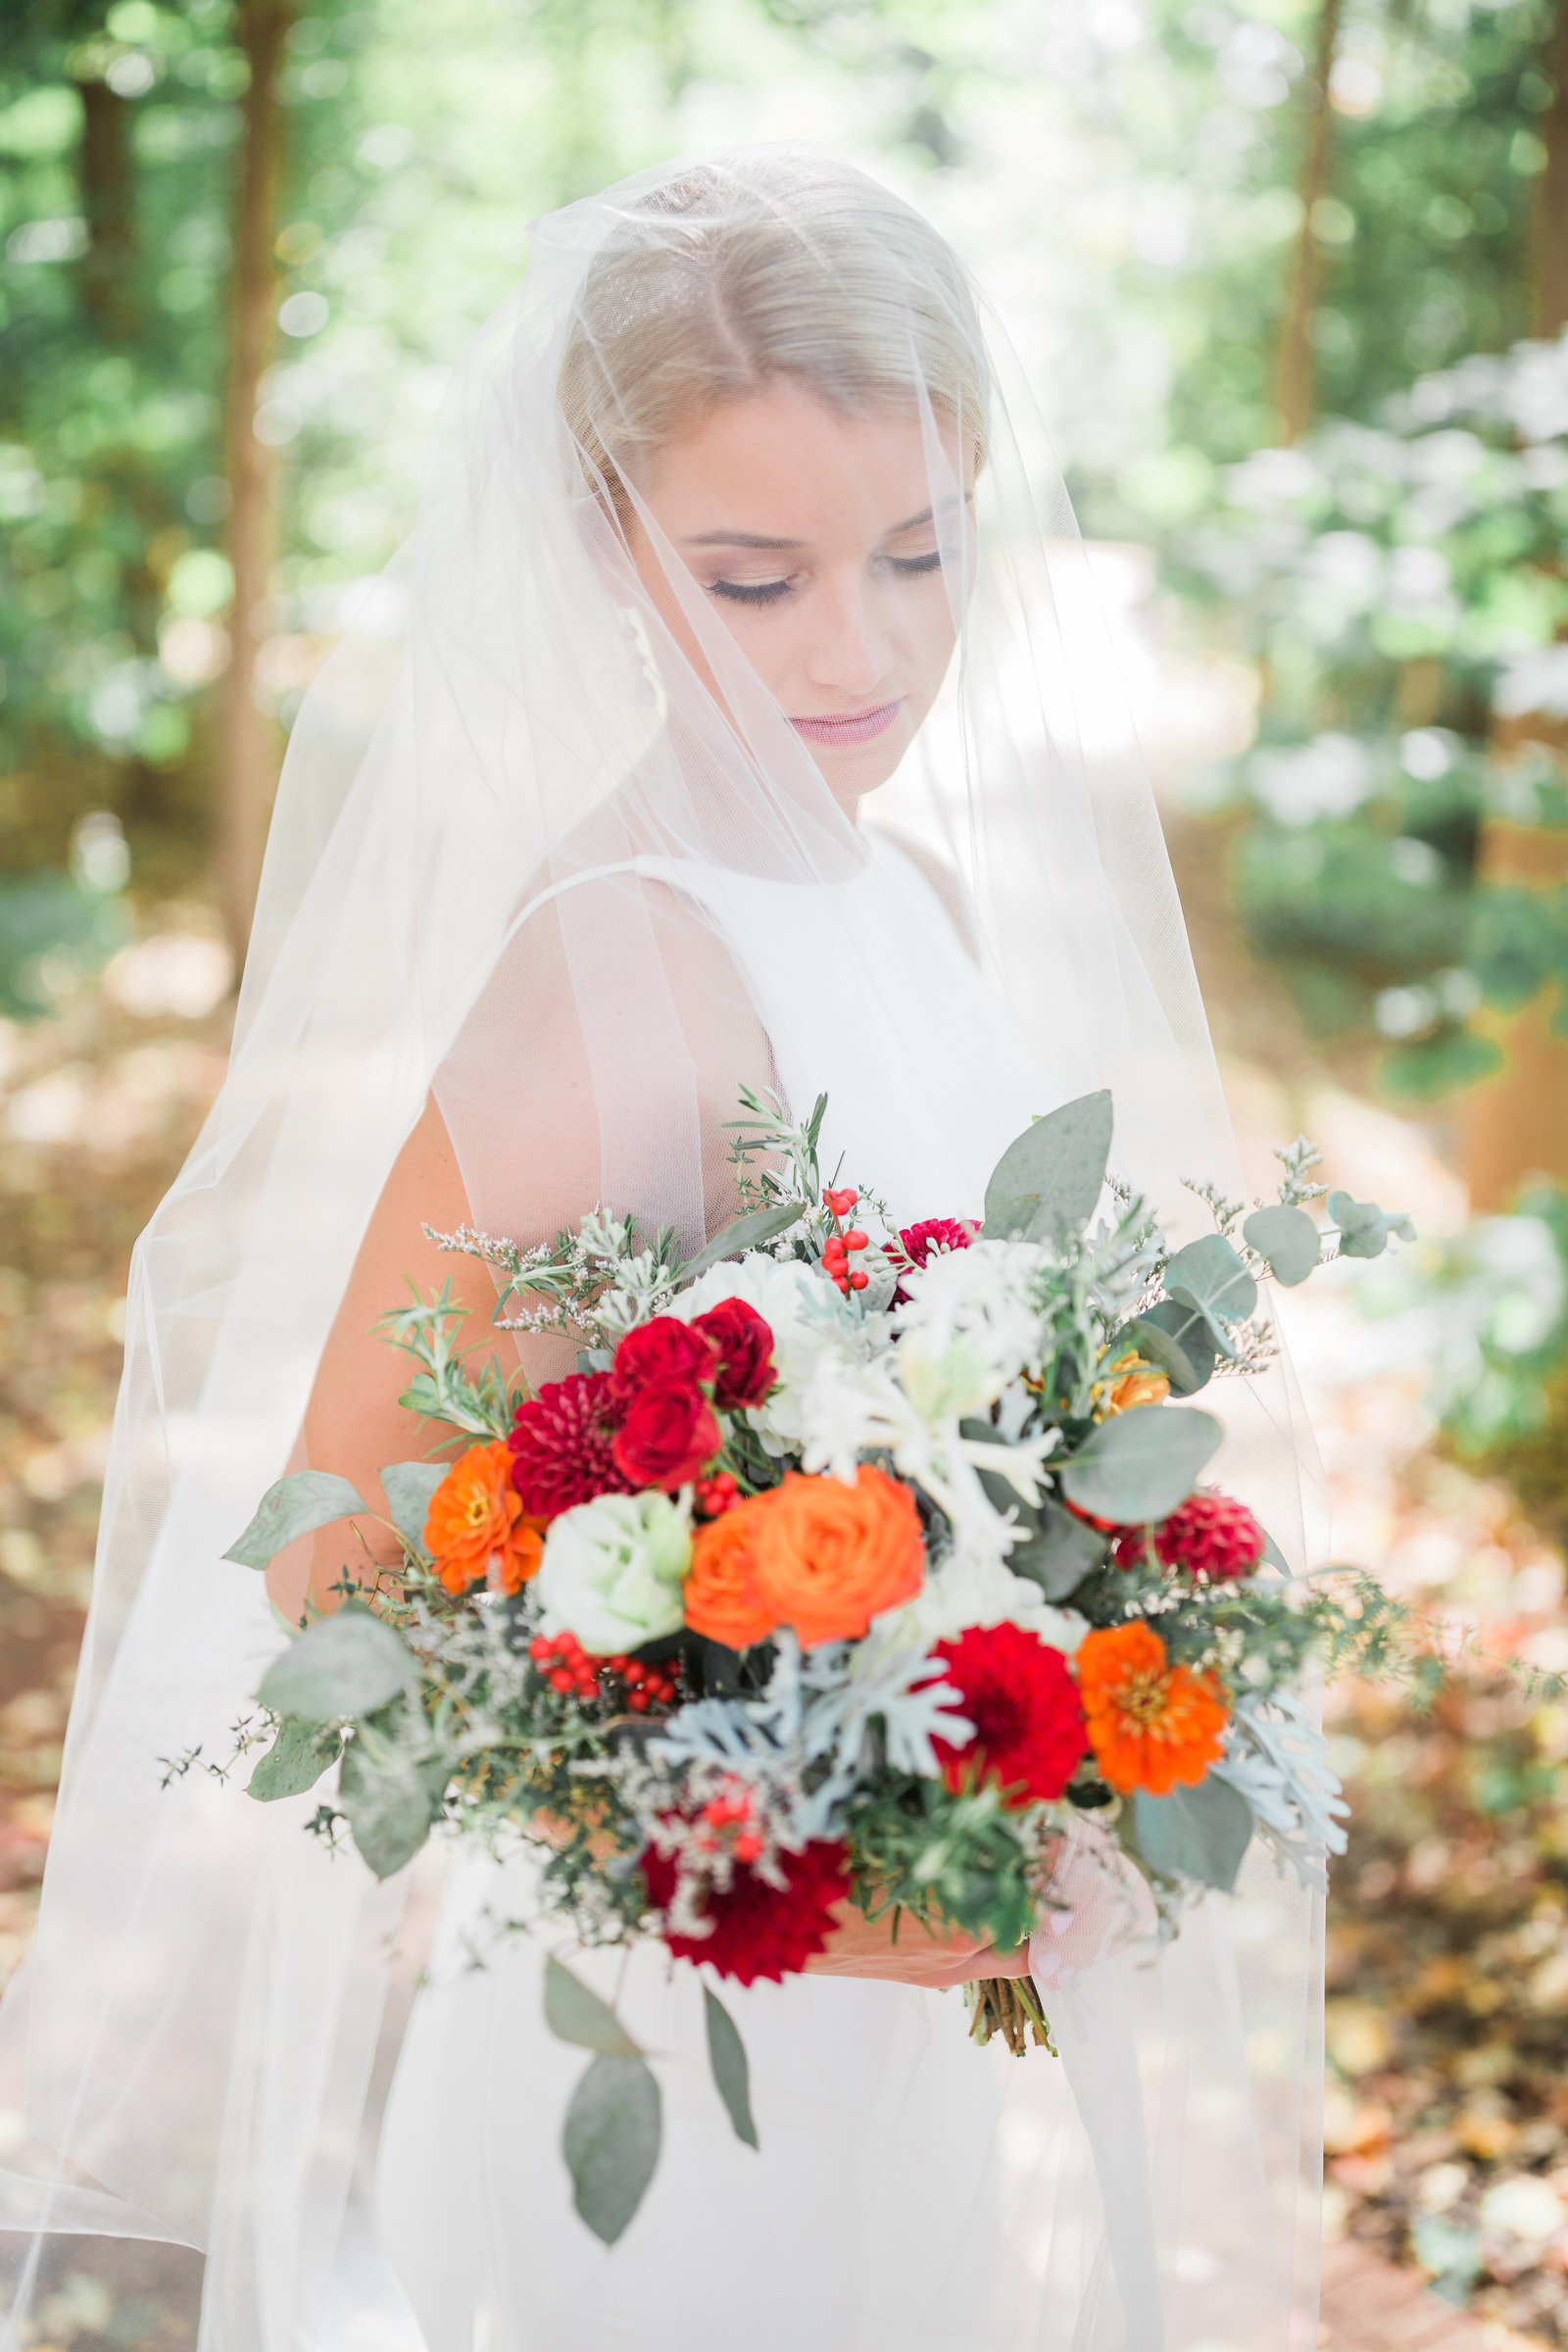 teresa schmidt photography-100017